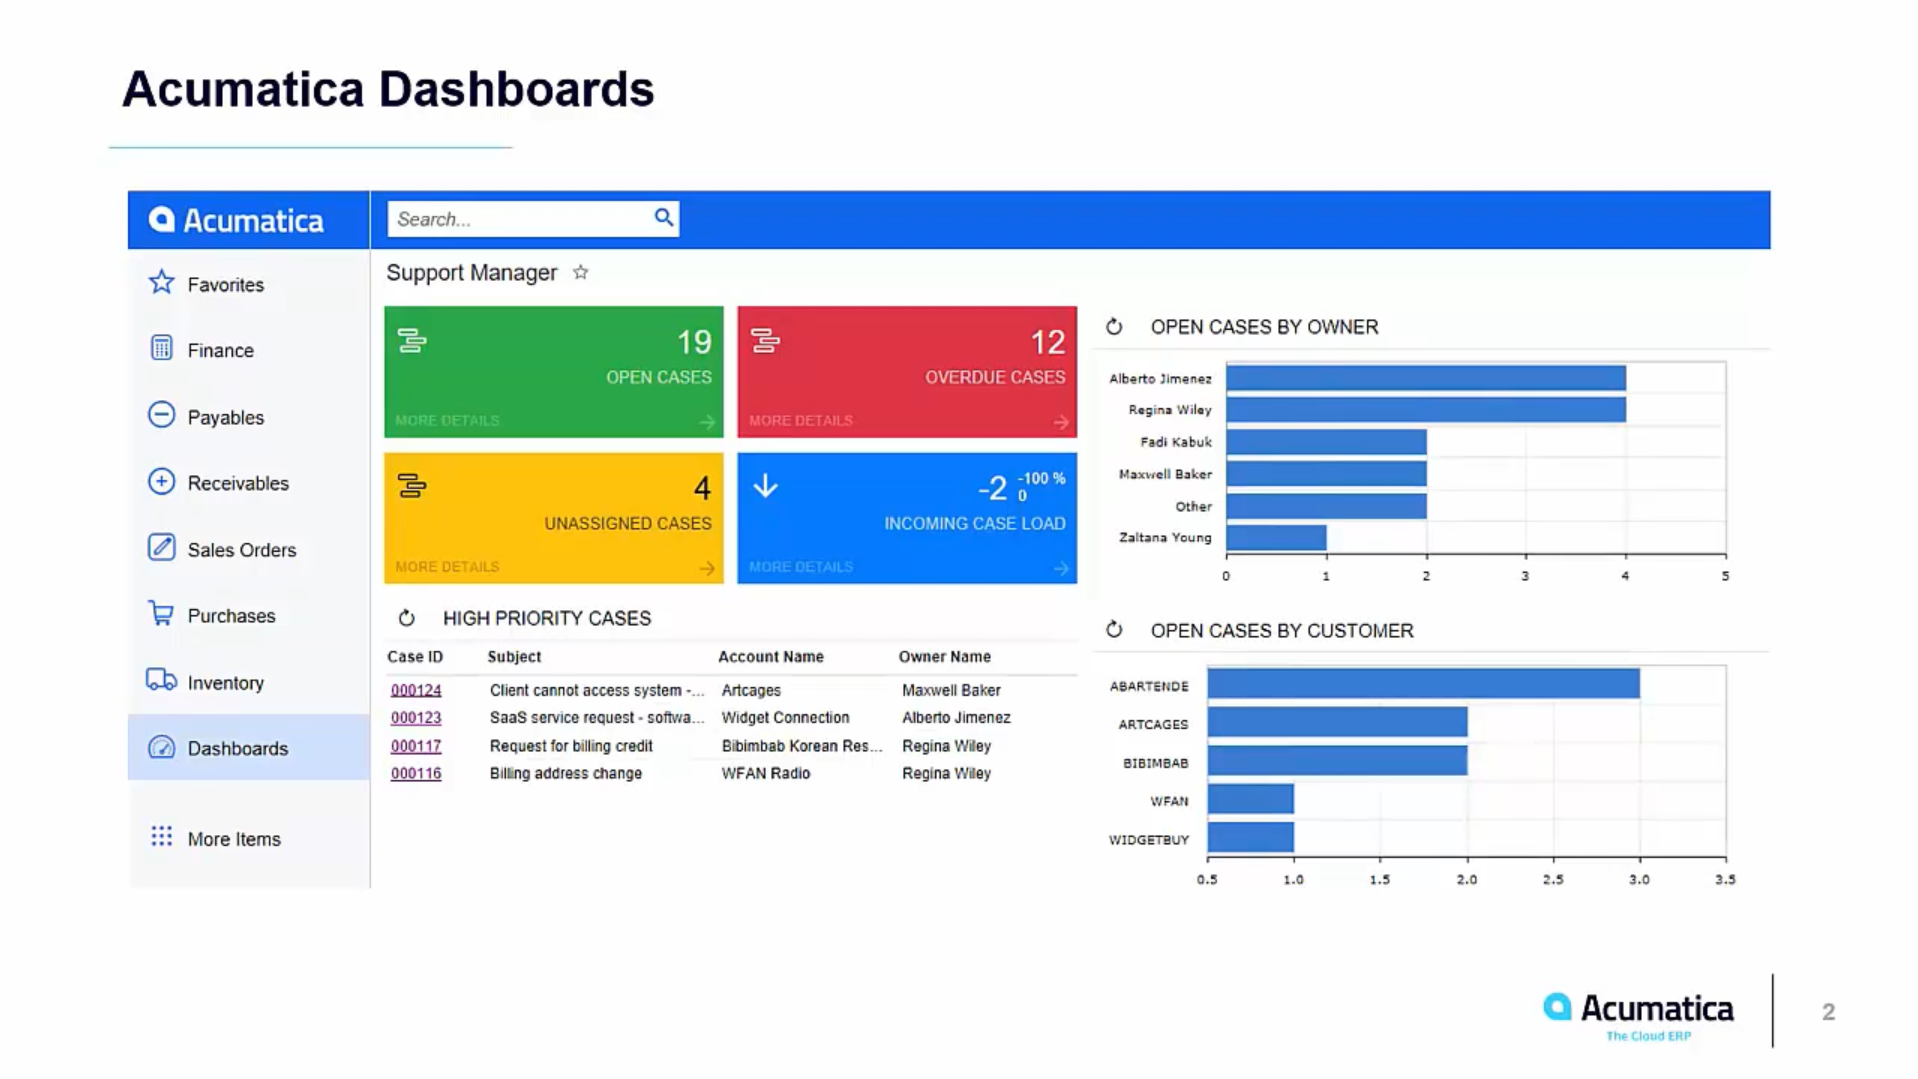 Featured Dashboards And Kpis On Acumatica Cloud Erp